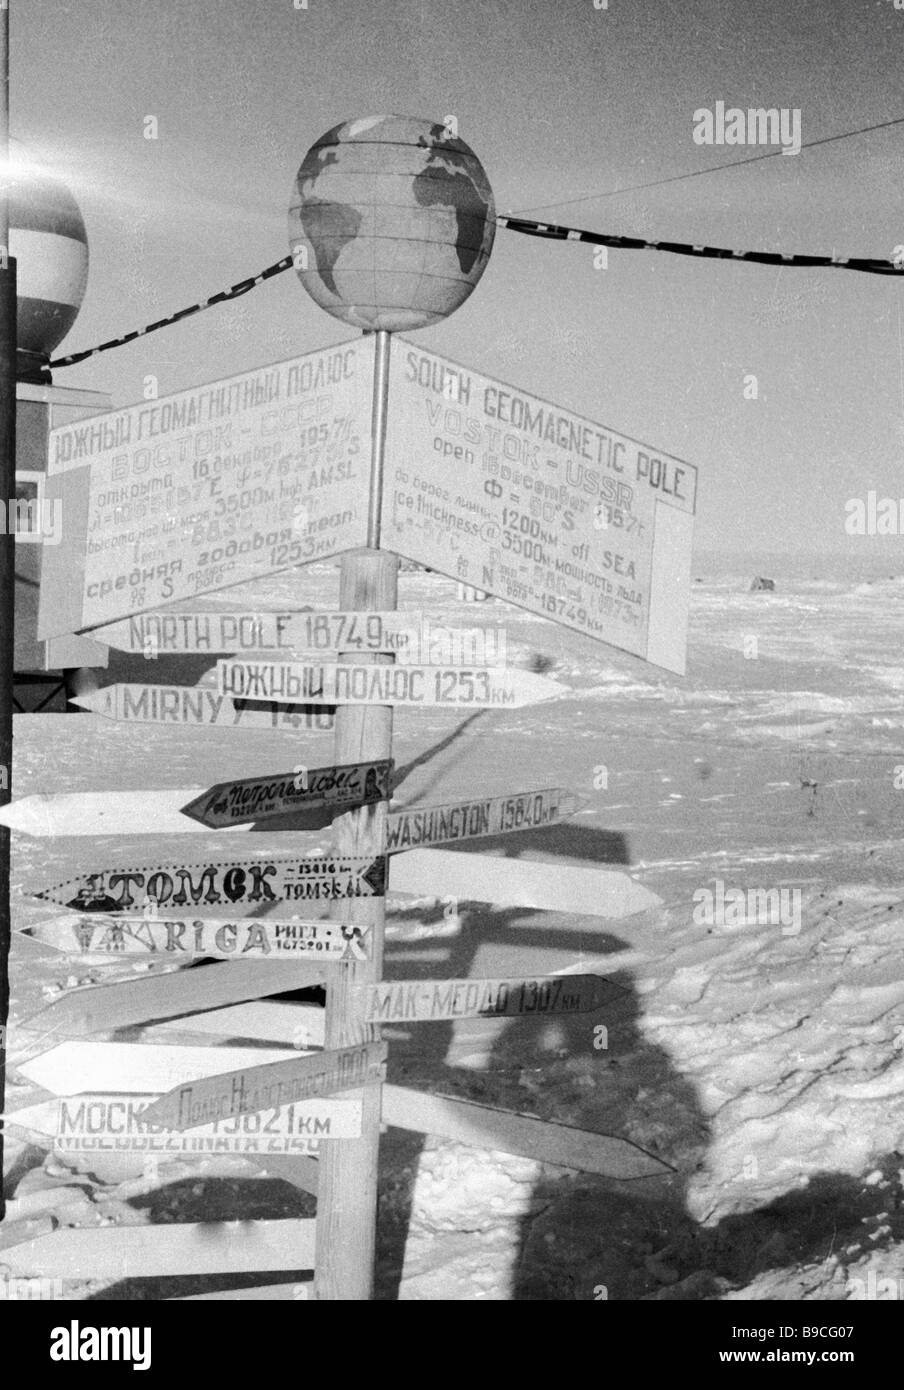 Geomagnetic terrestrial pole marked at Soviet polar station Vostok in the Antarctic - Stock Image